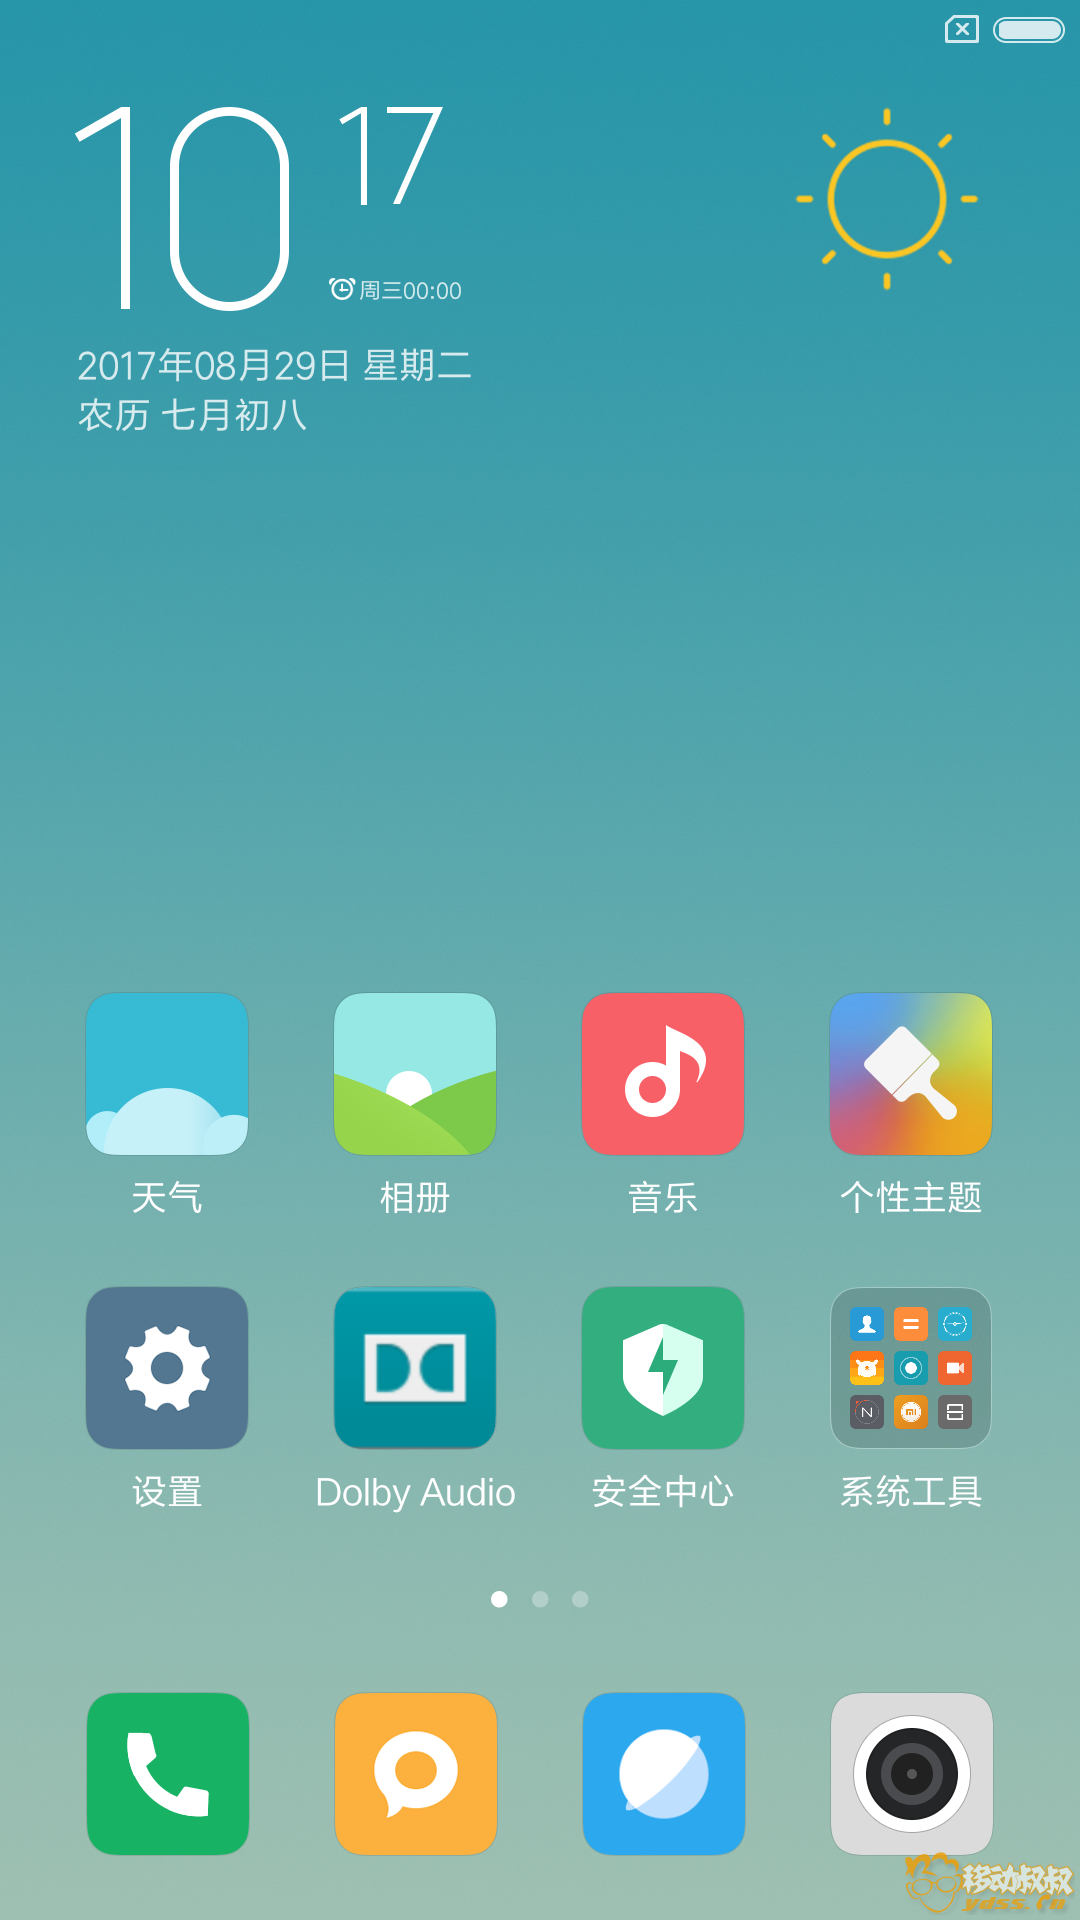 Screenshot_2017-08-29-10-17-11-799_com.miui.home.png